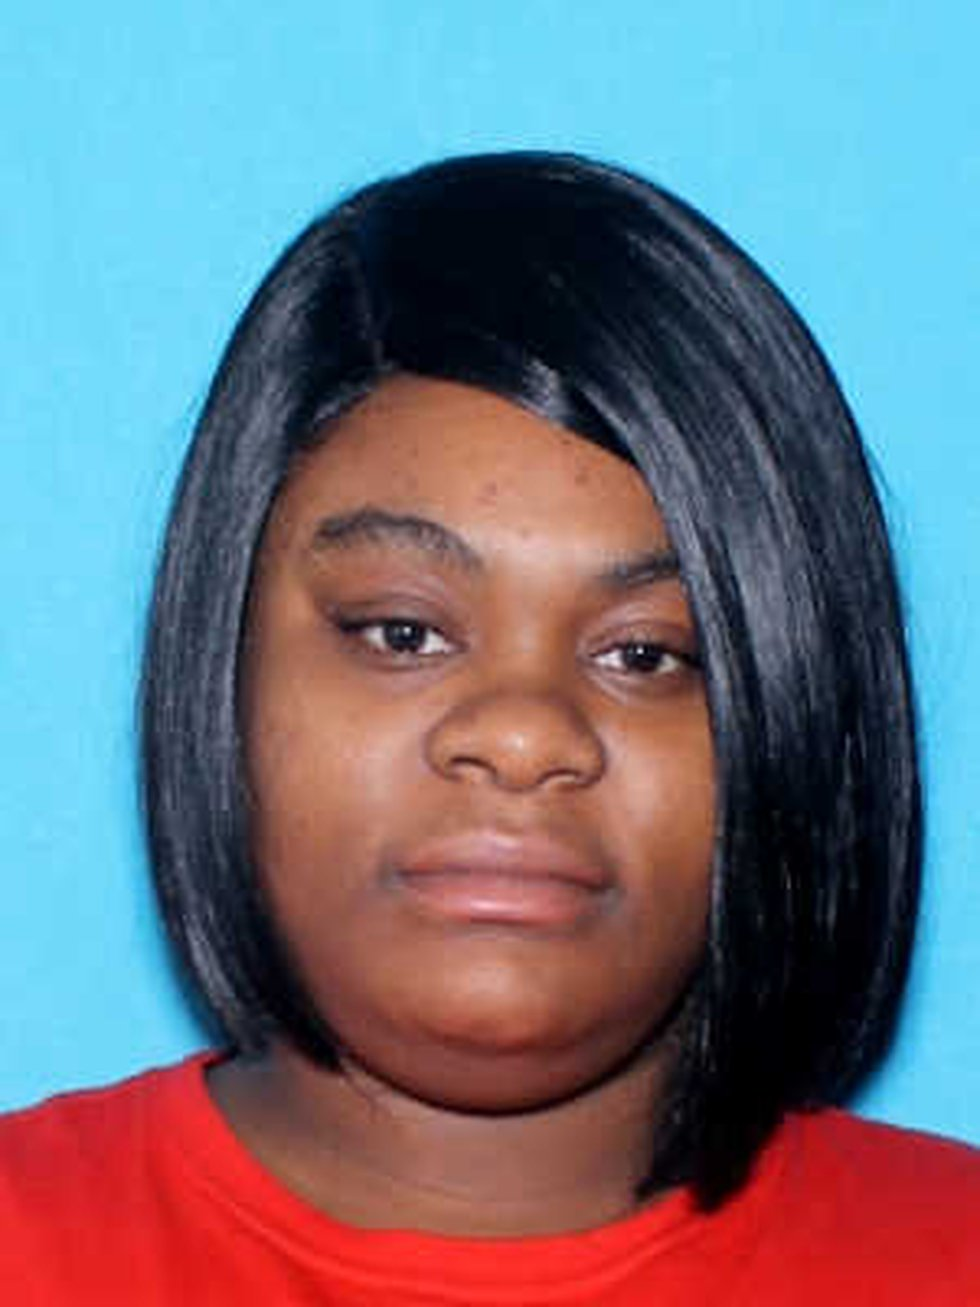 Tusc. Deputies: Mother accused of killing man who was holding her baby; baby also shot